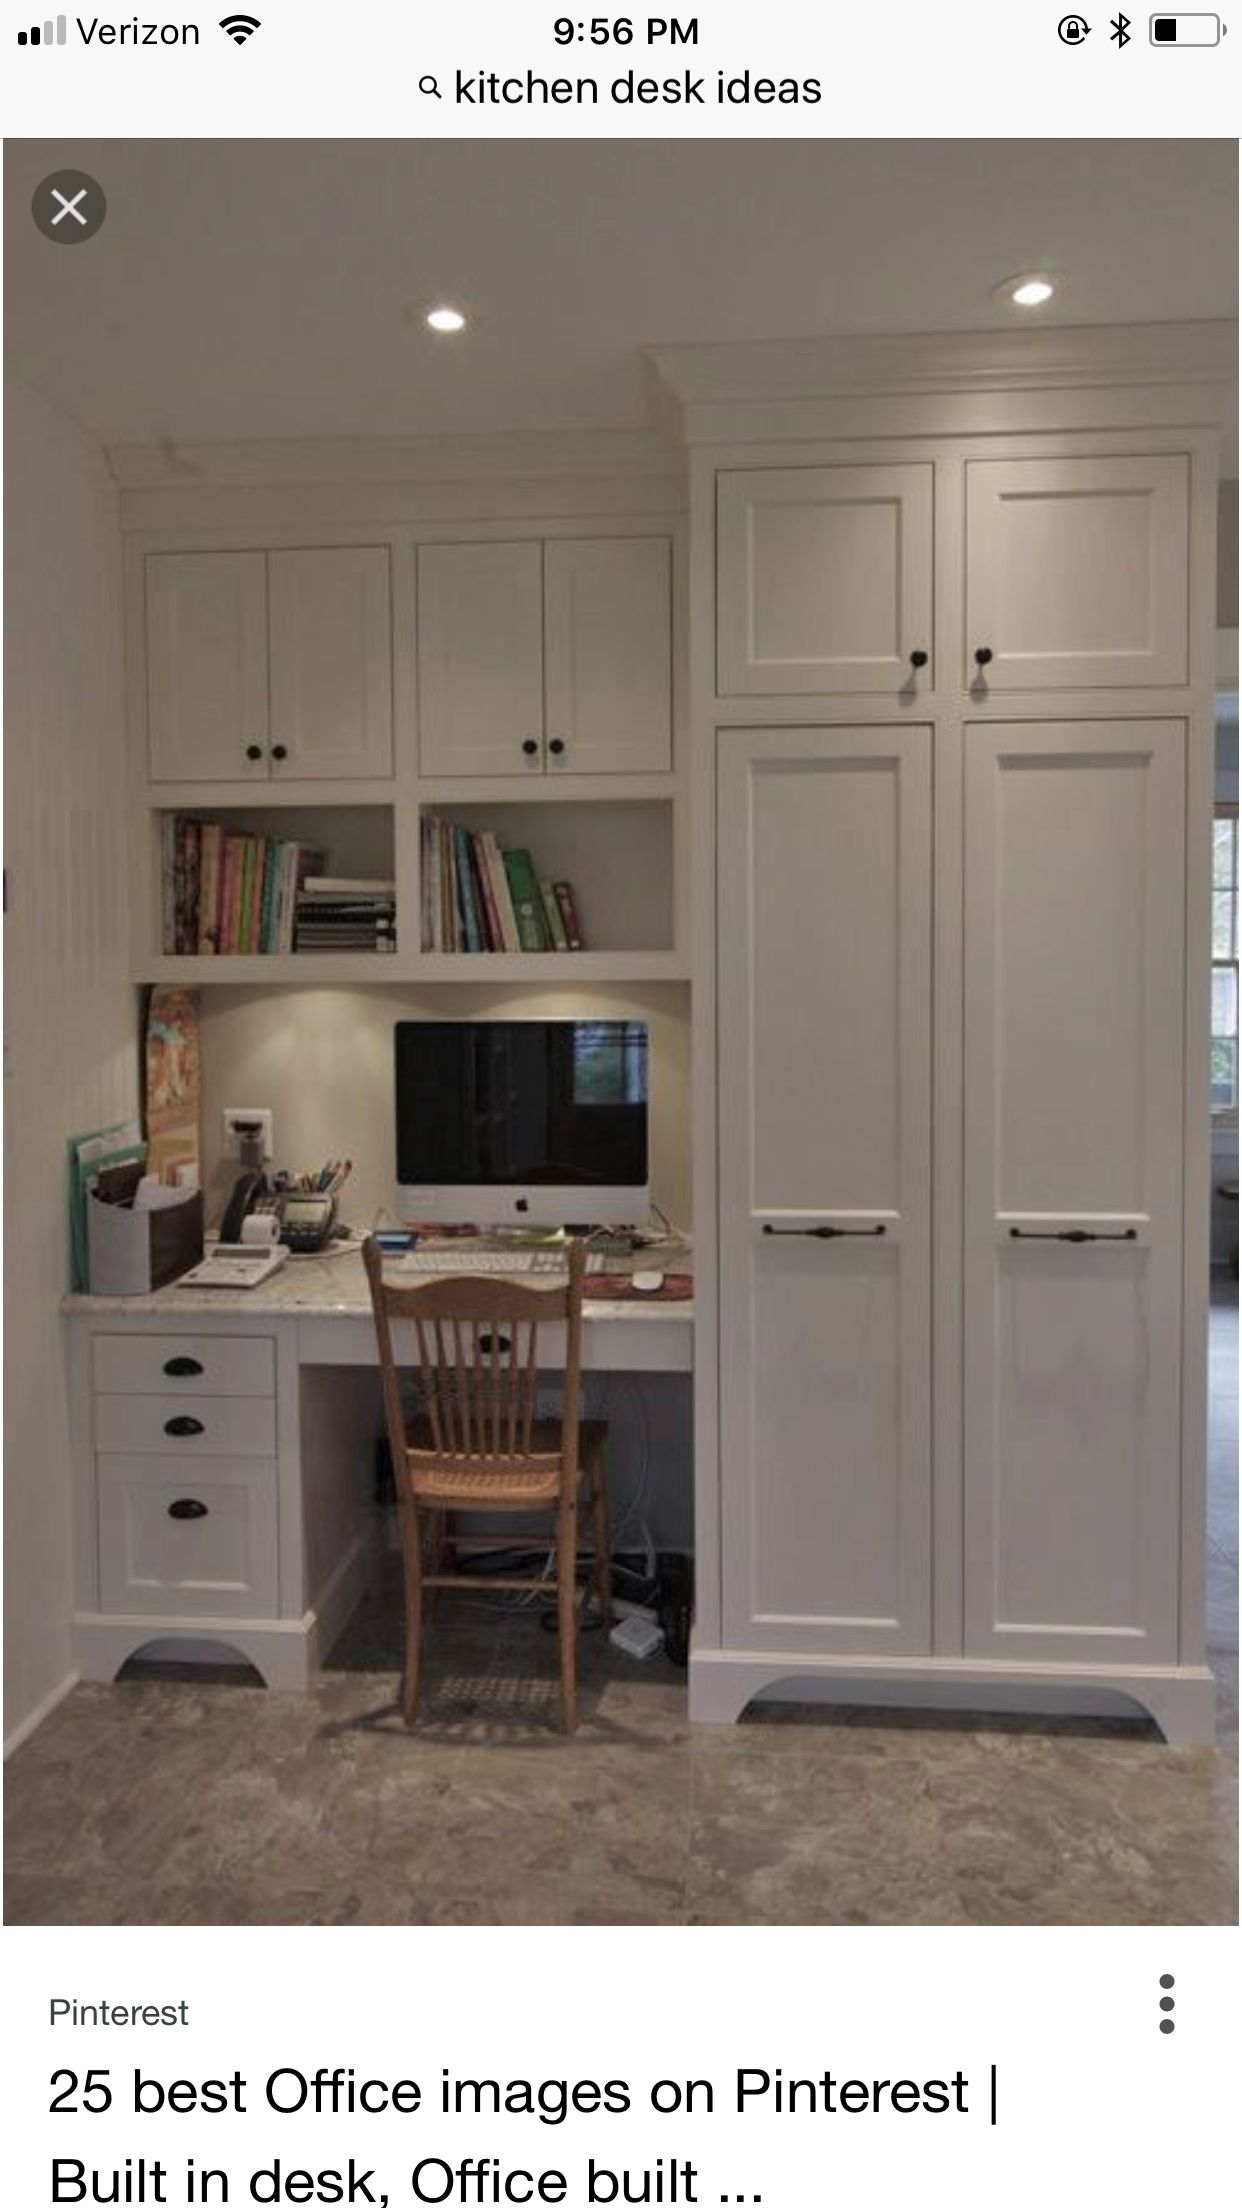 Pin By Adrienne Brunette On Home Decor Home Office Design Build A Closet Office Built Ins